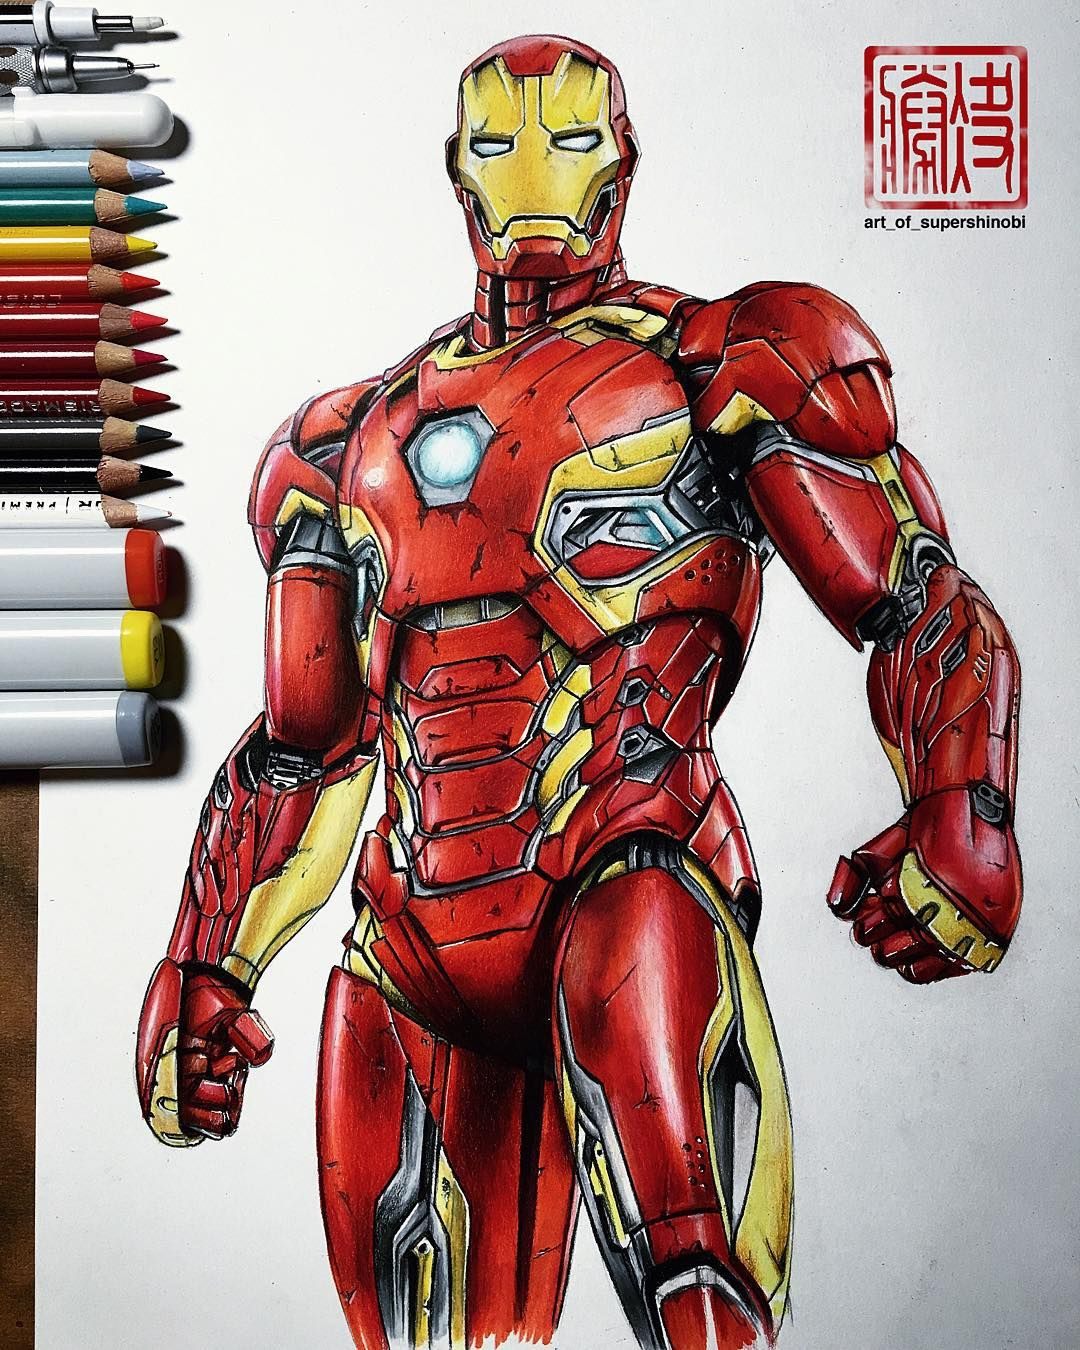 Art Of Supershinobi On Instagram Iron Man Mark Xlv Complete Copic Markers With Prismacolor Pencils On Top Of St Iron Man Drawing Iron Man Marvel Coloring